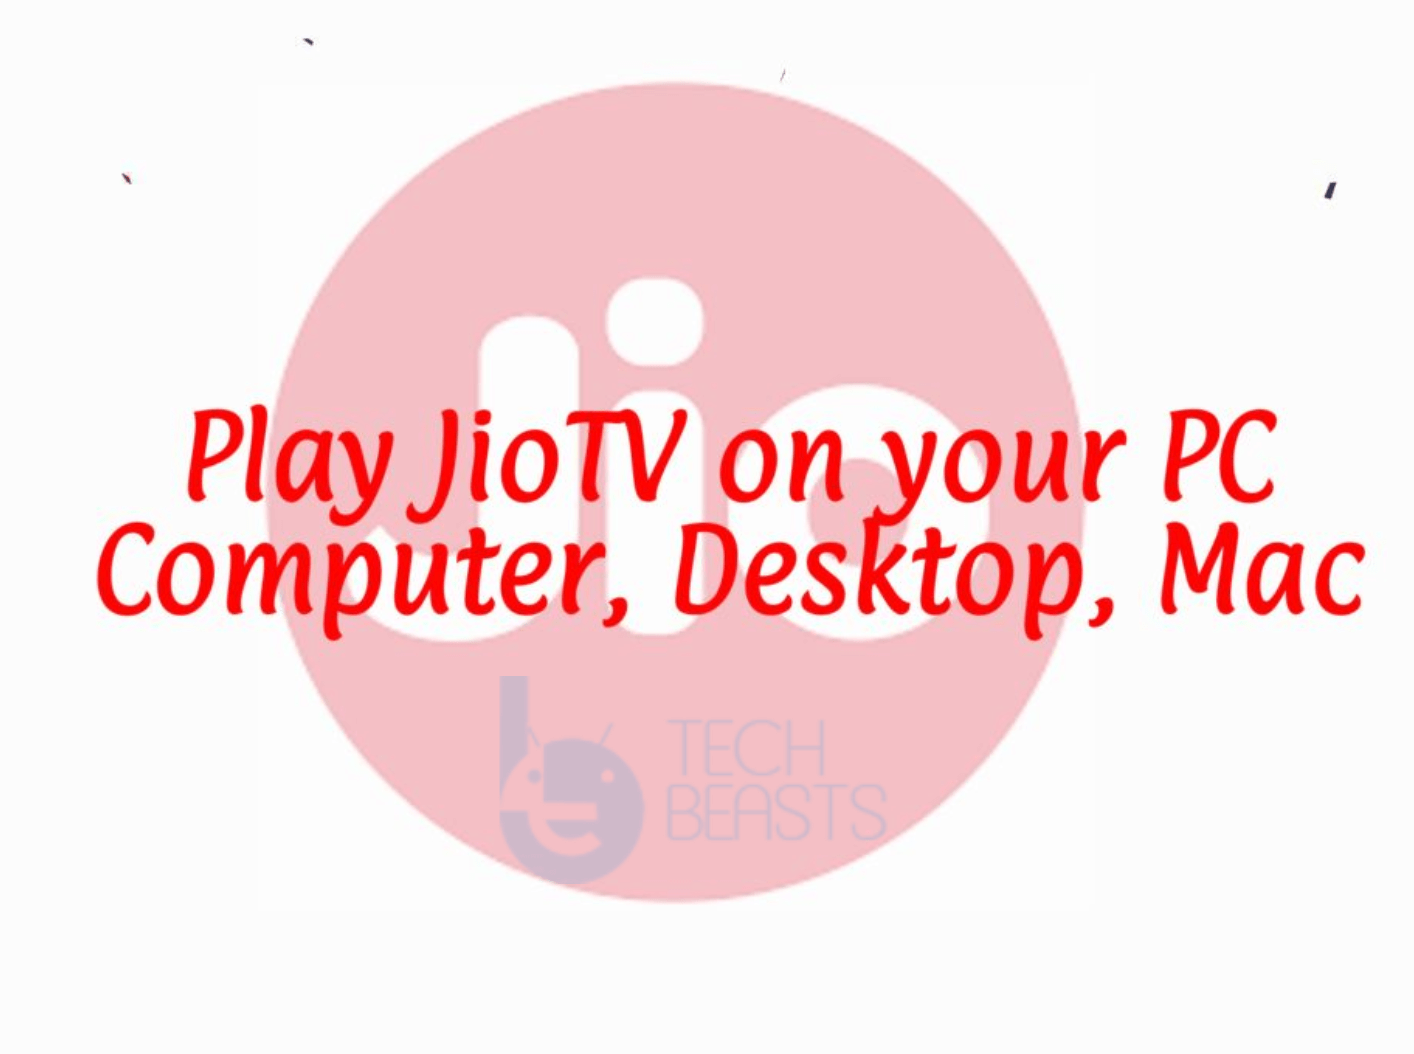 How to Play JioTV on PC, Computer, Desktop, Laptop | TechBeasts